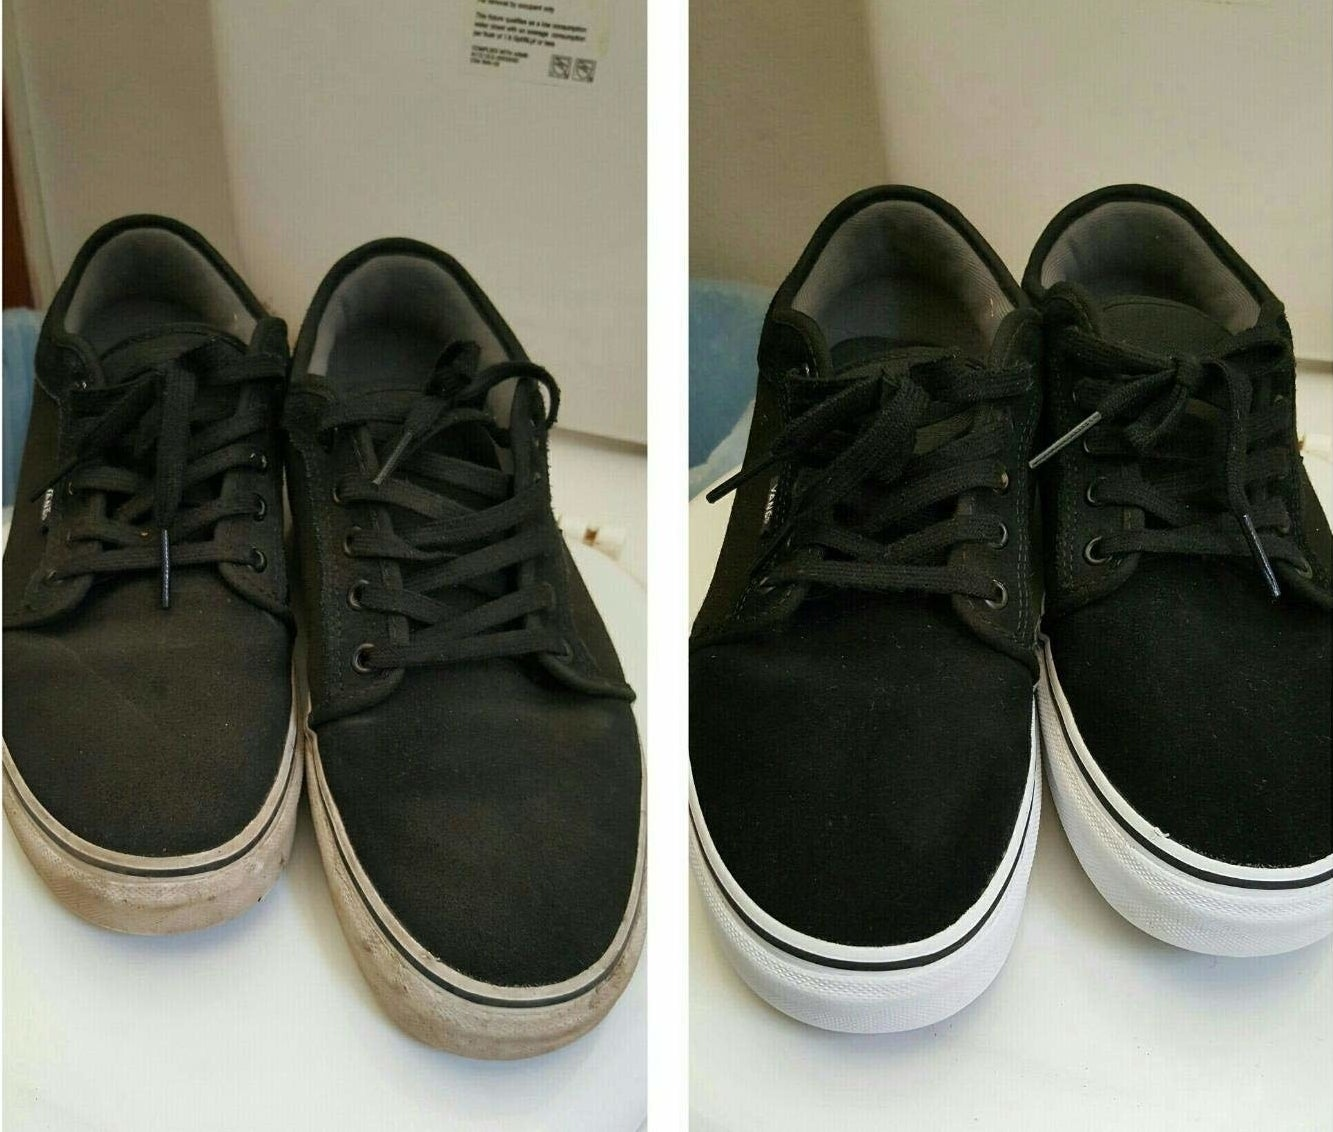 A before-and-after photo showing dirty shoes and clean shoes